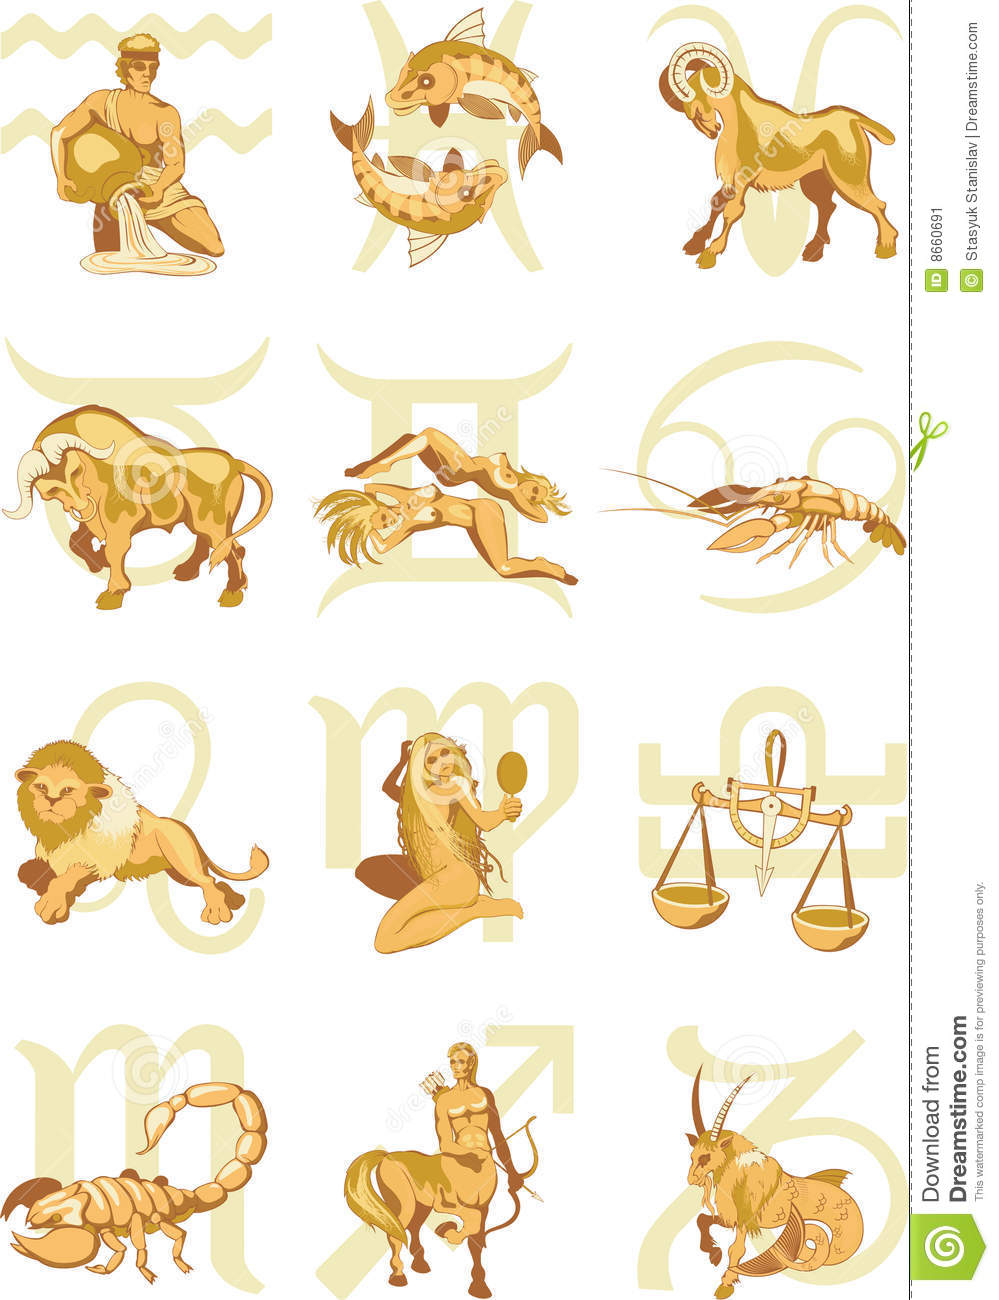 Symbole d horoscope